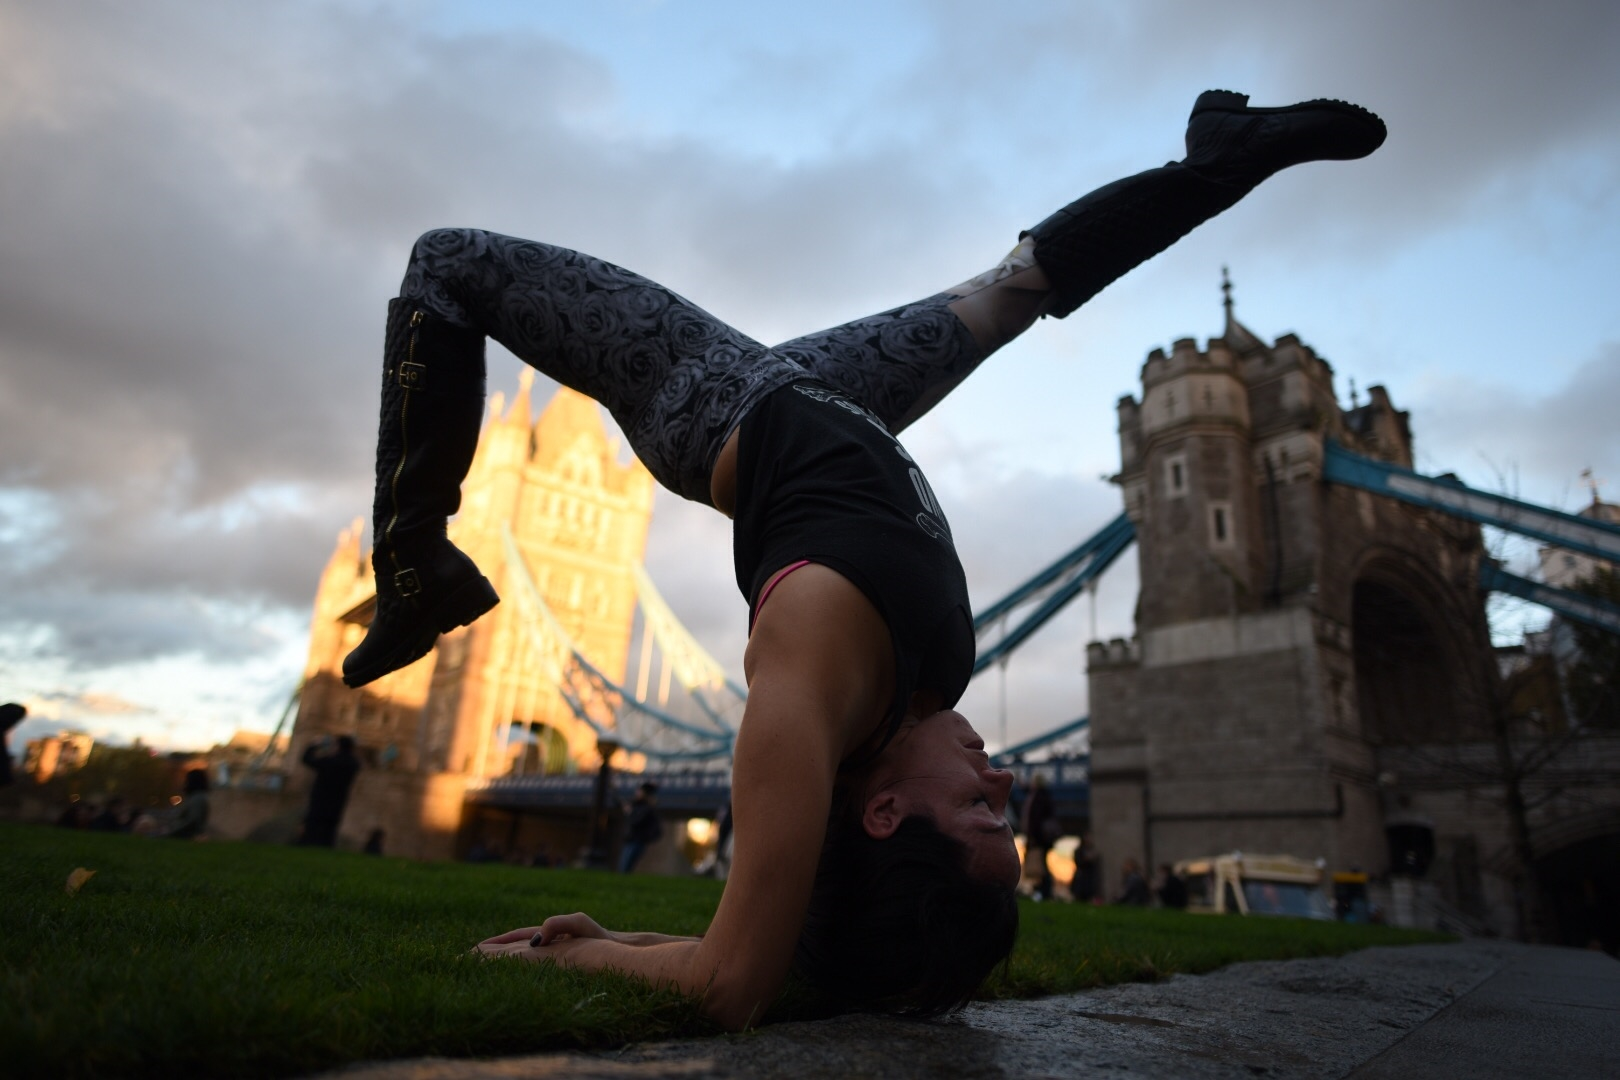 A celebratory hollow back in front of Tower Bridge in London. The sun had just burst through the rain clouds. I took it as a sign.